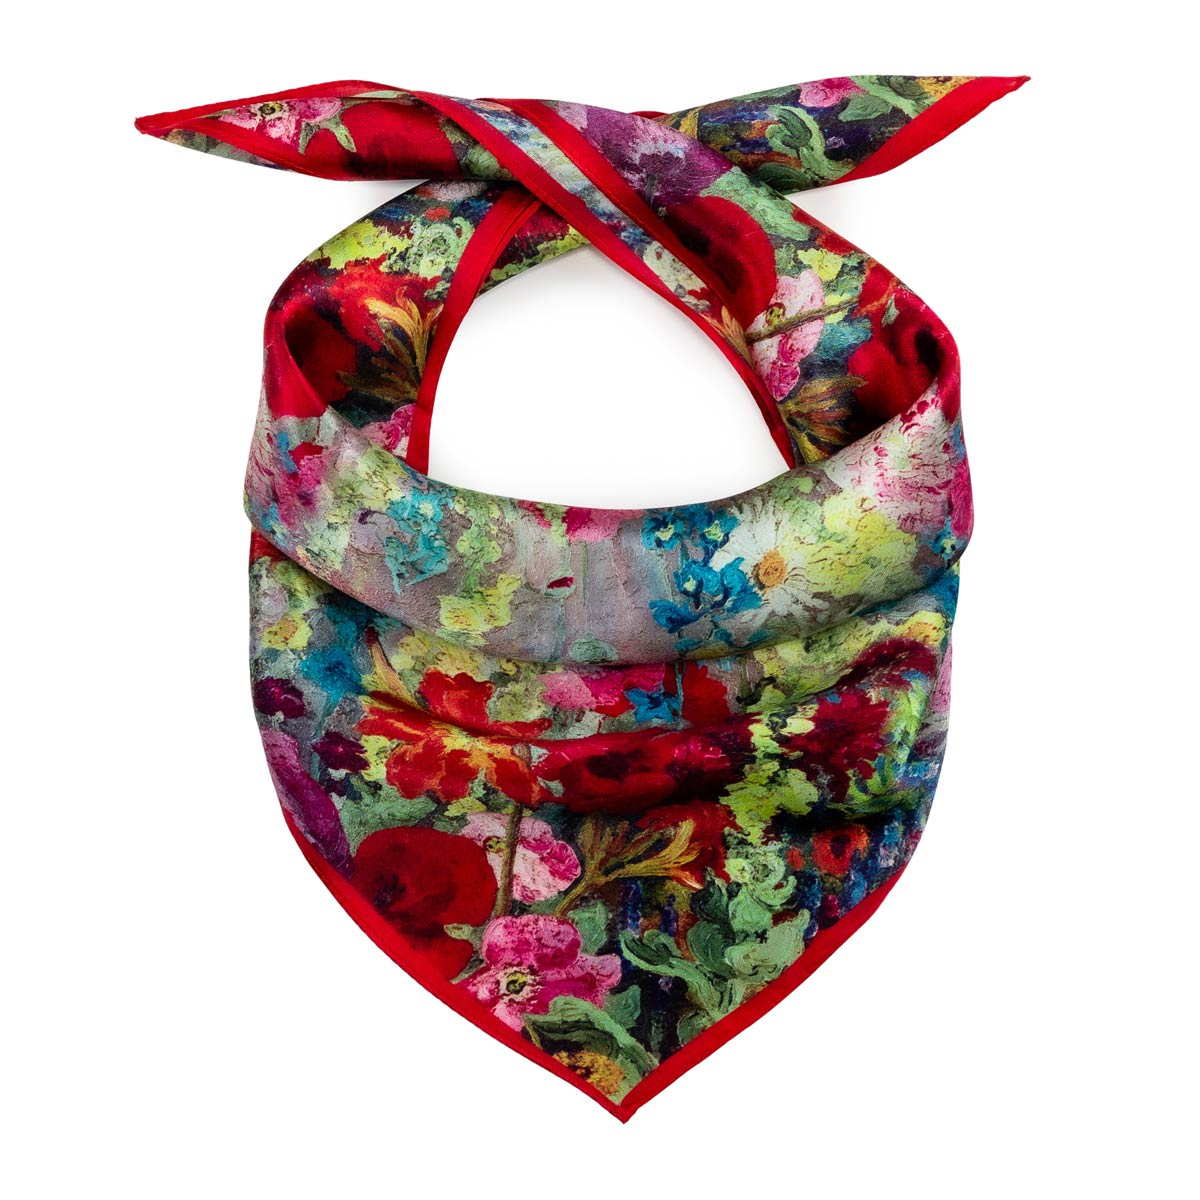 AT-06370_F12-1-foulard-femme-hotesse-coquelicots-rouge